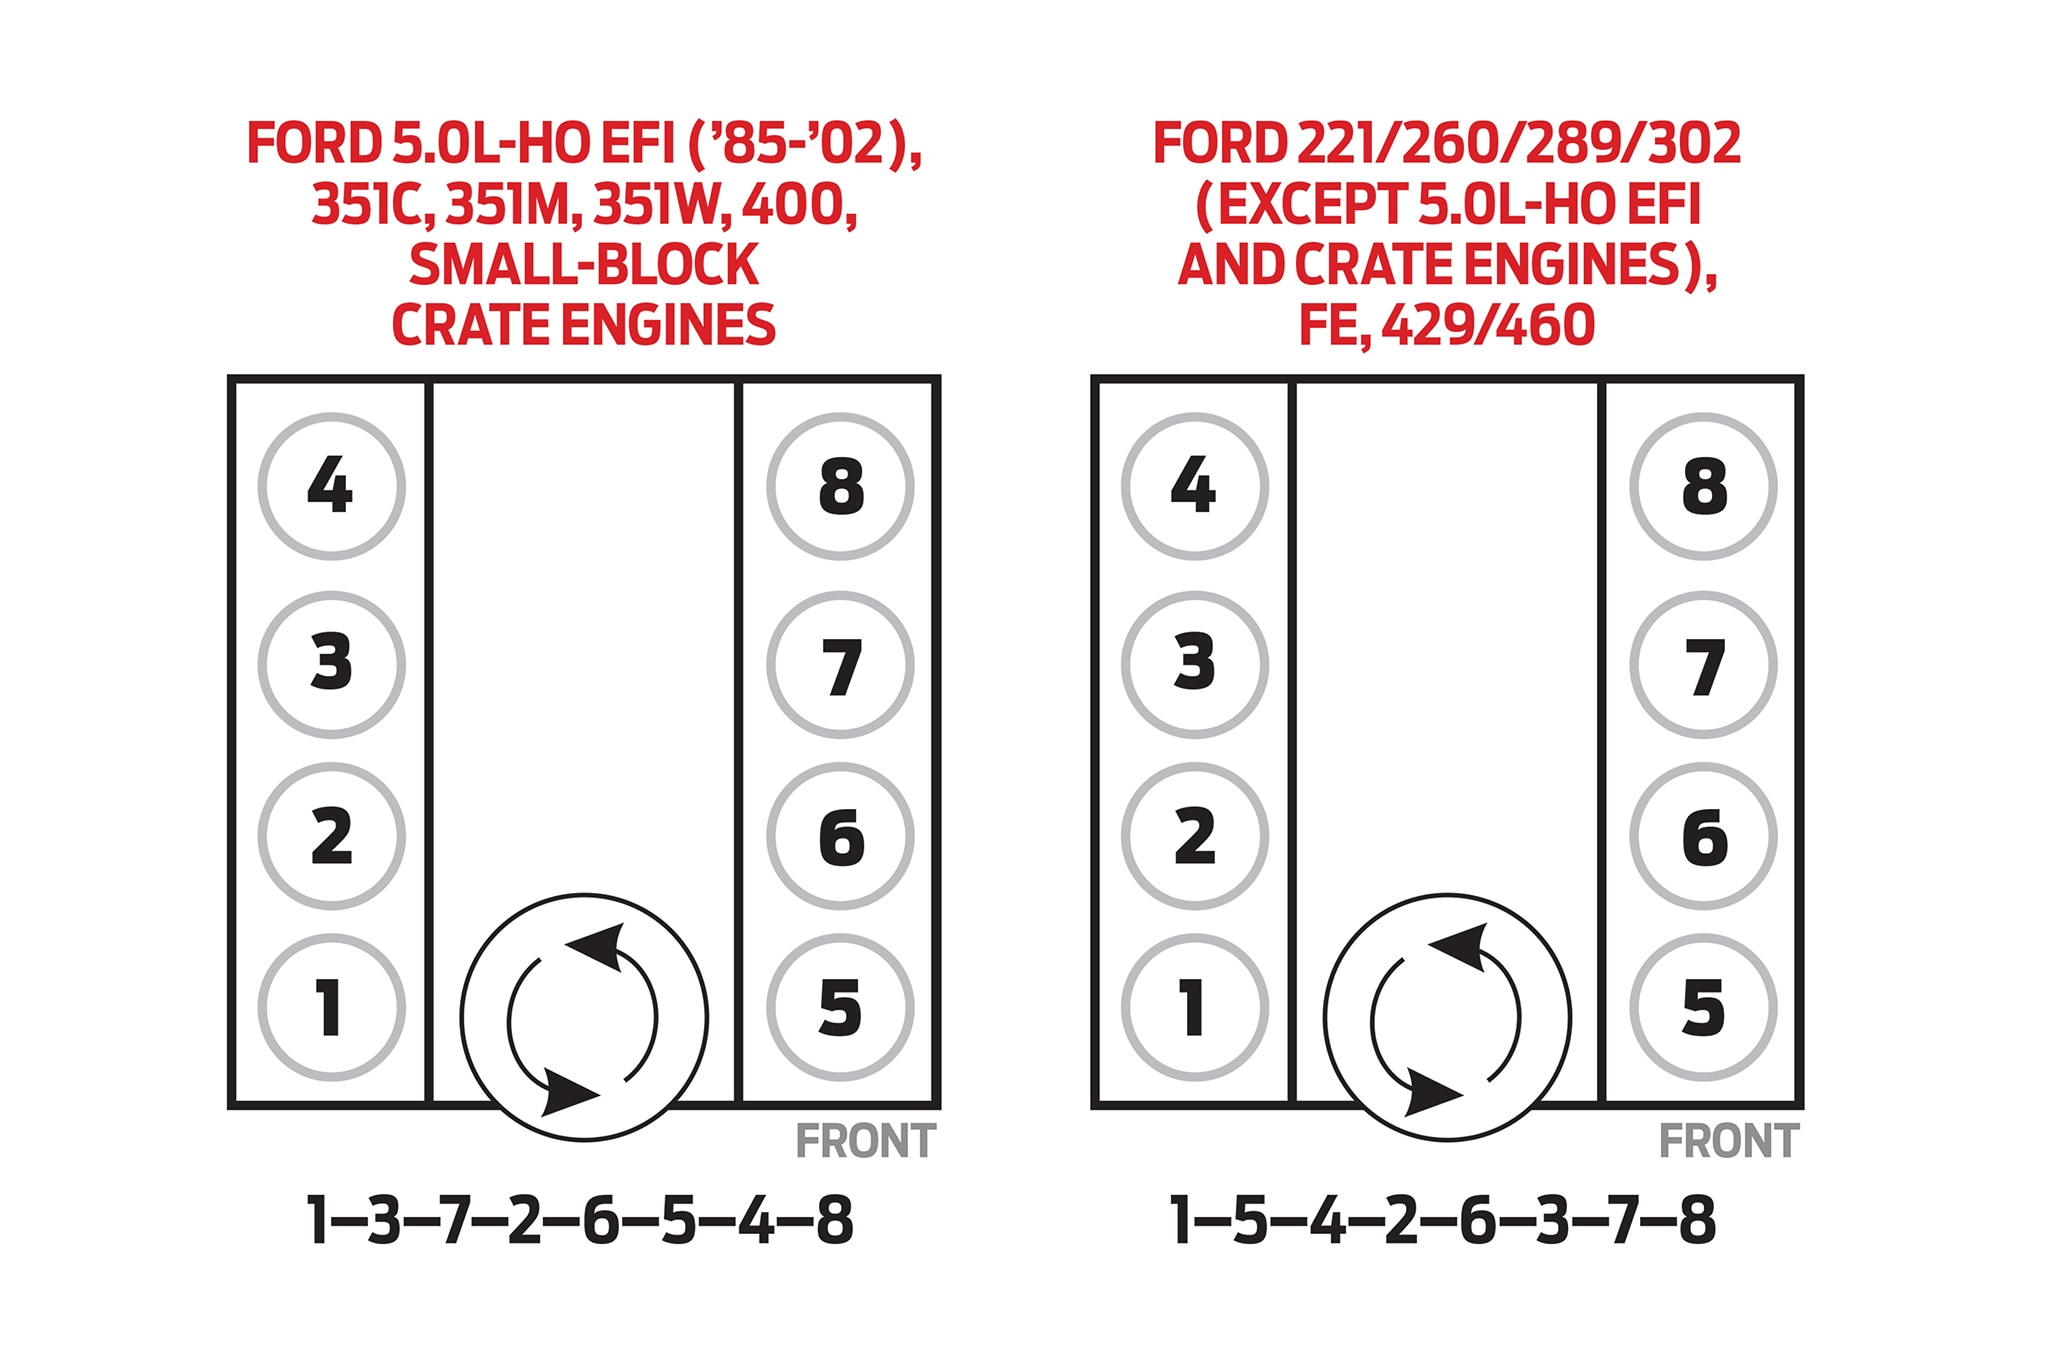 hight resolution of ford ignition firing order 302 engine ford engine problems and ford crate engine firing order diagram wiring